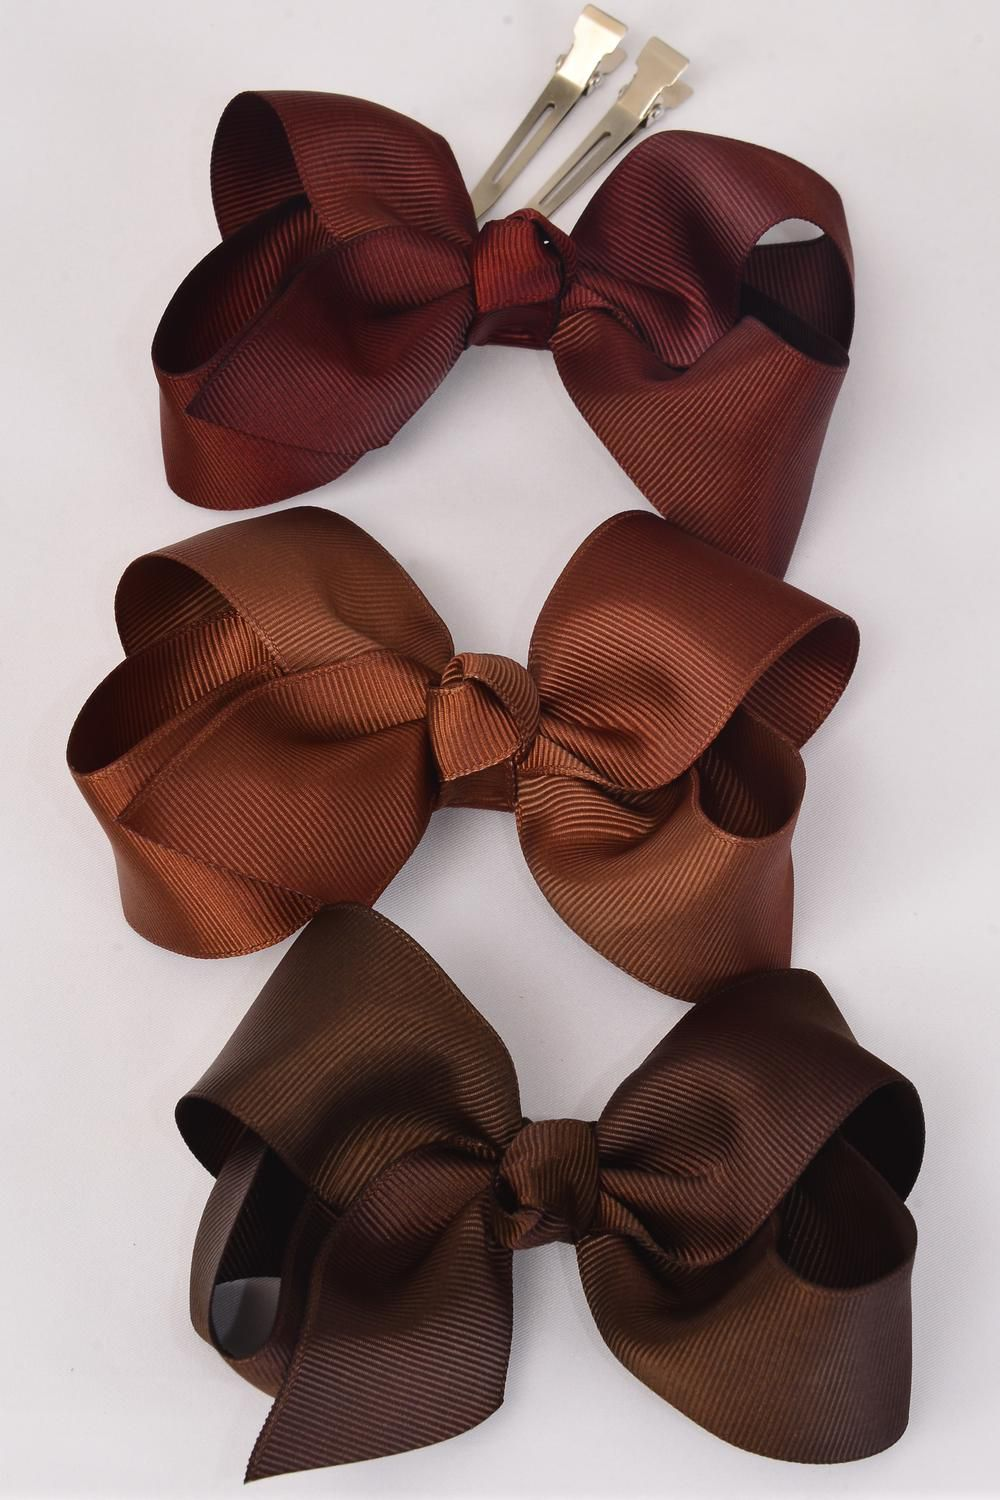 "Hair Bow Large 4""x3"" Wide Brown tone Mix Alligator Clip Grosgrain Bow-tie/DZ **Brown Tone** Alligator Clip,Size-4""x 3"" Wide,4 of each Color Asst,Clip Strip & UPC Code"